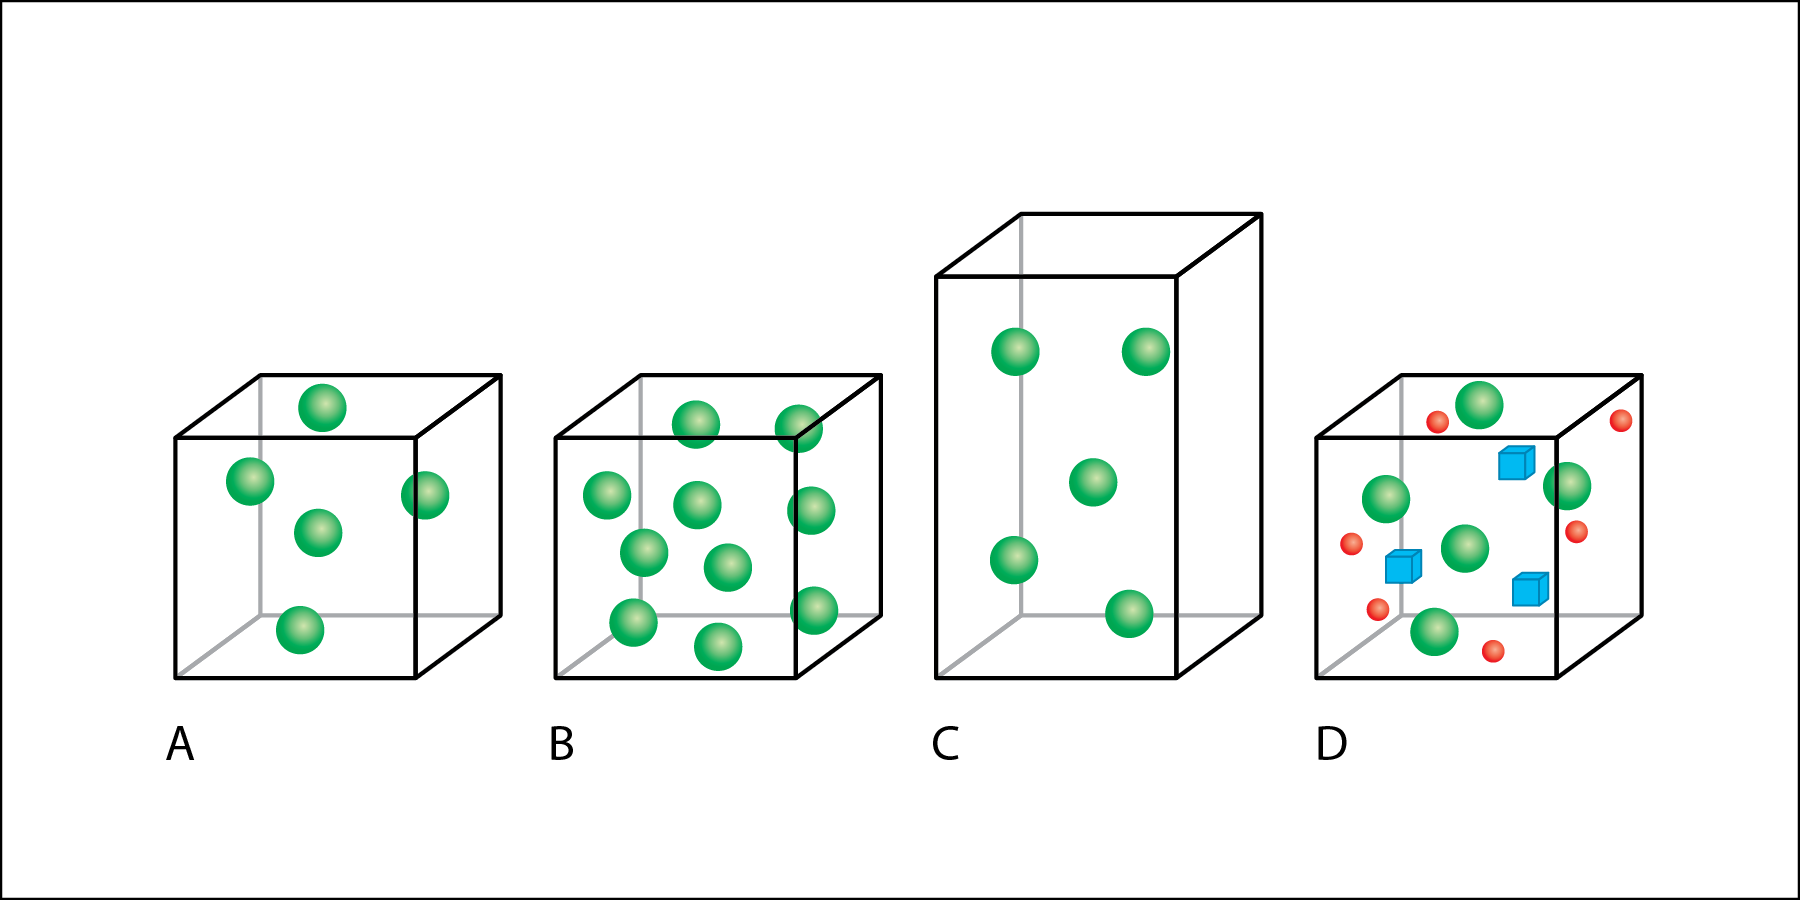 particulate drawing schematic